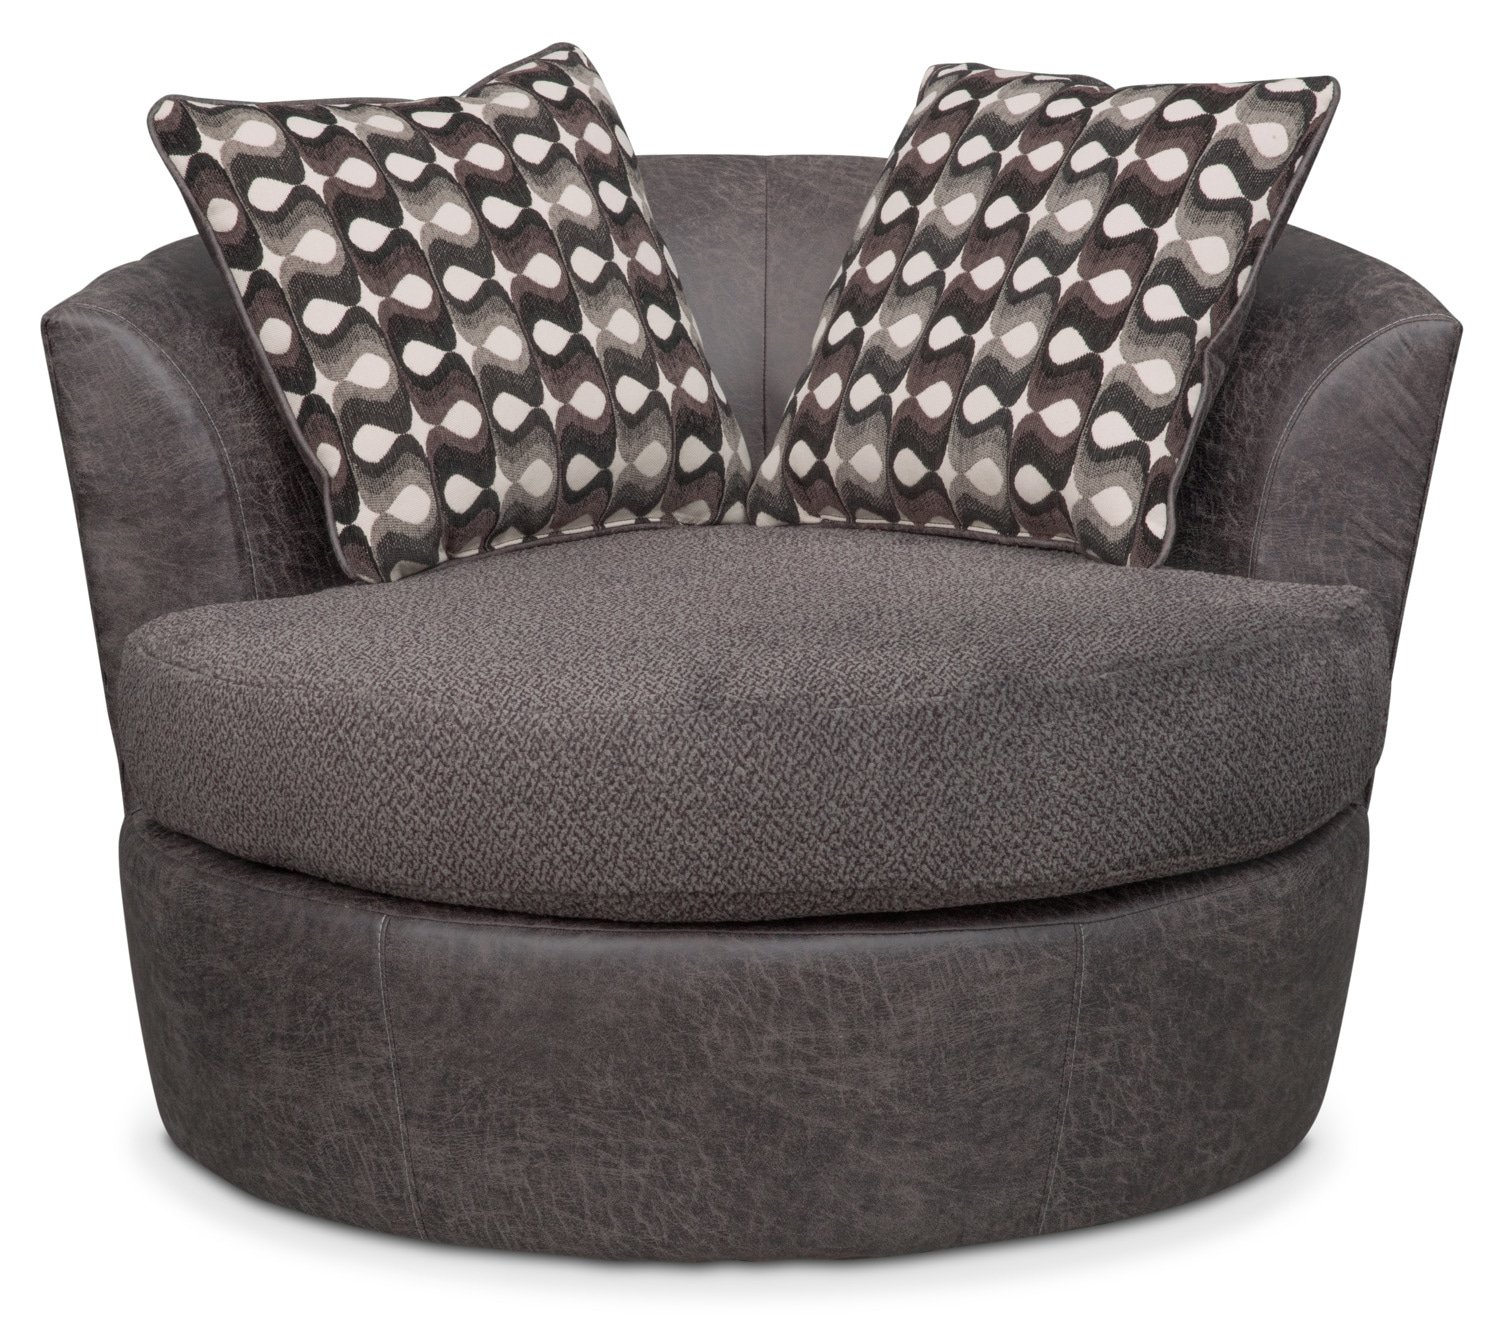 Brando Swivel Swivel Chair | Value City Furniture And Mattresses Intended For Loft Smokey Swivel Accent Chairs (View 3 of 25)